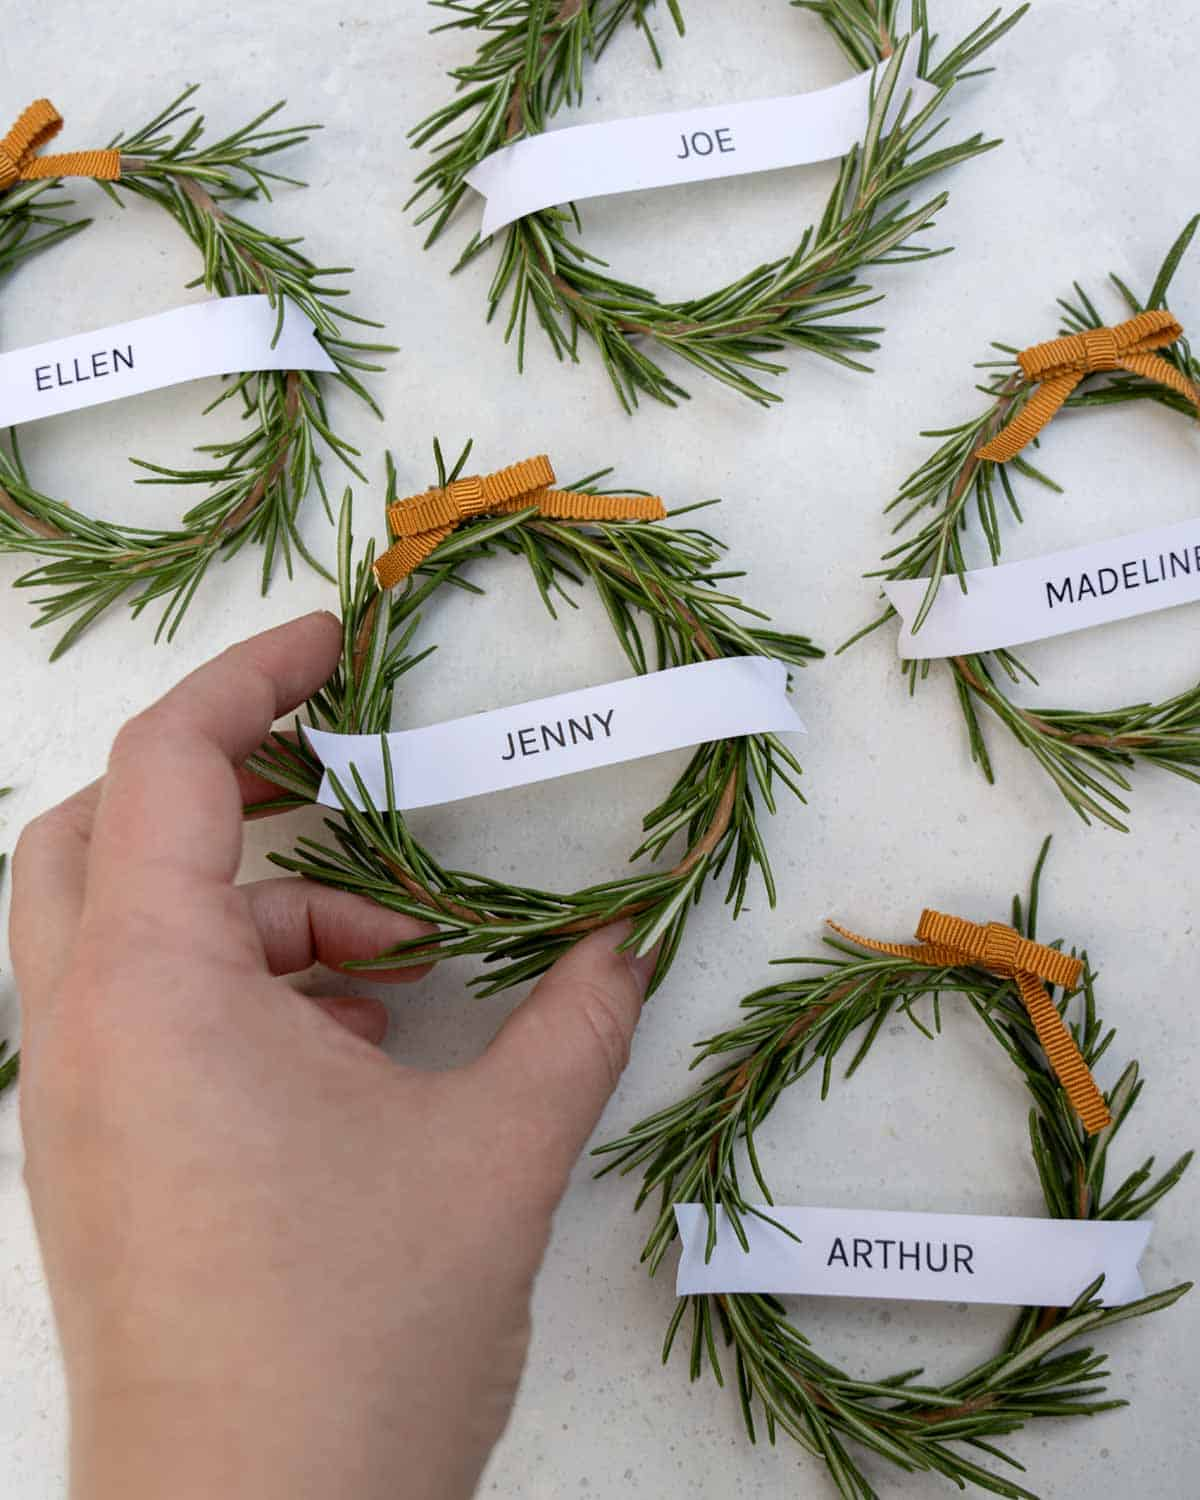 Rosemary wreaths all laid out on a surface.